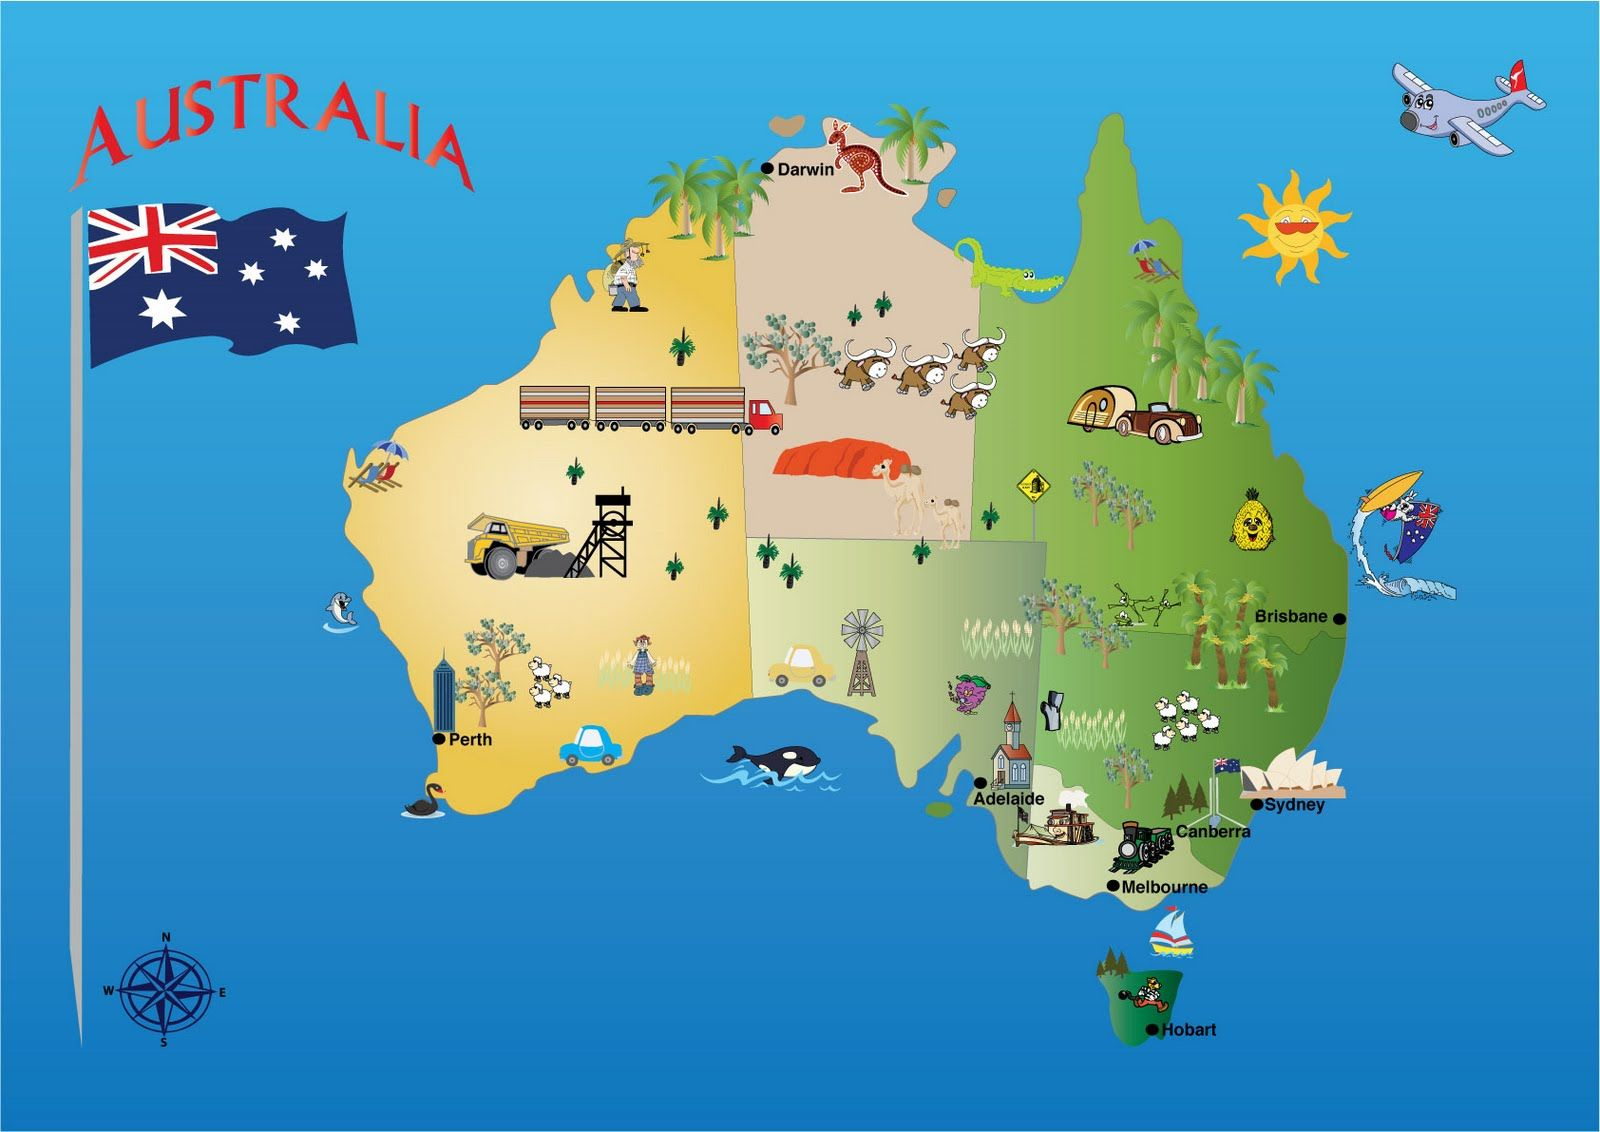 Interesting facts about Australia for kids, a map, flag